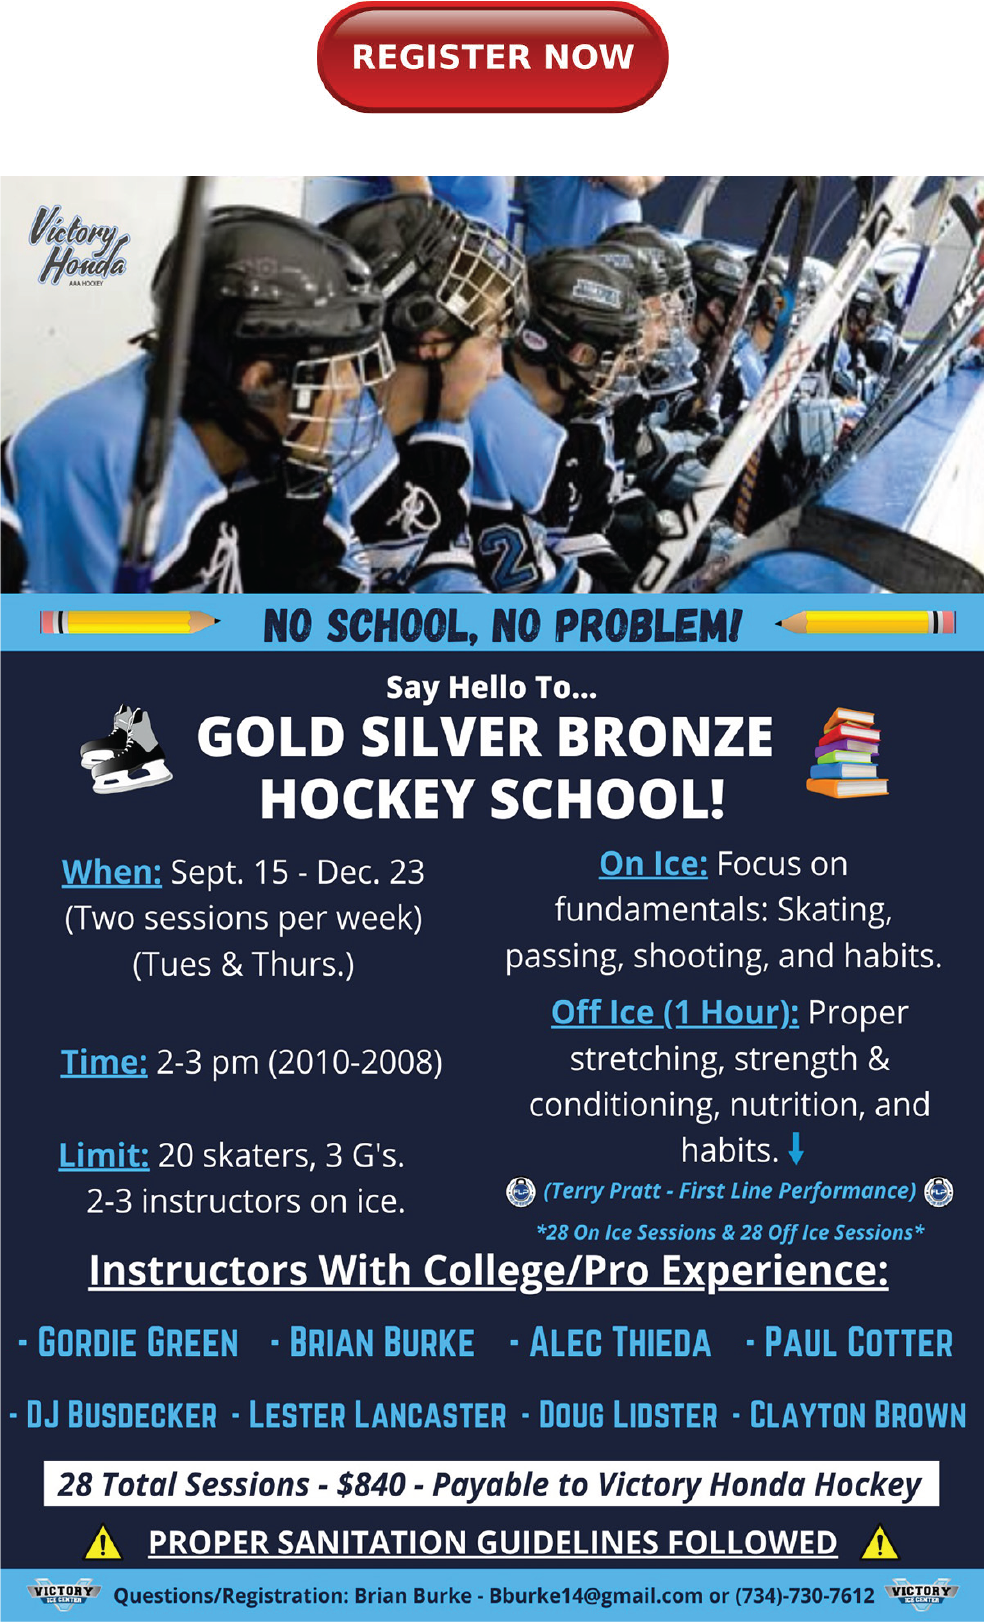 Hockey School Register 2010-2008